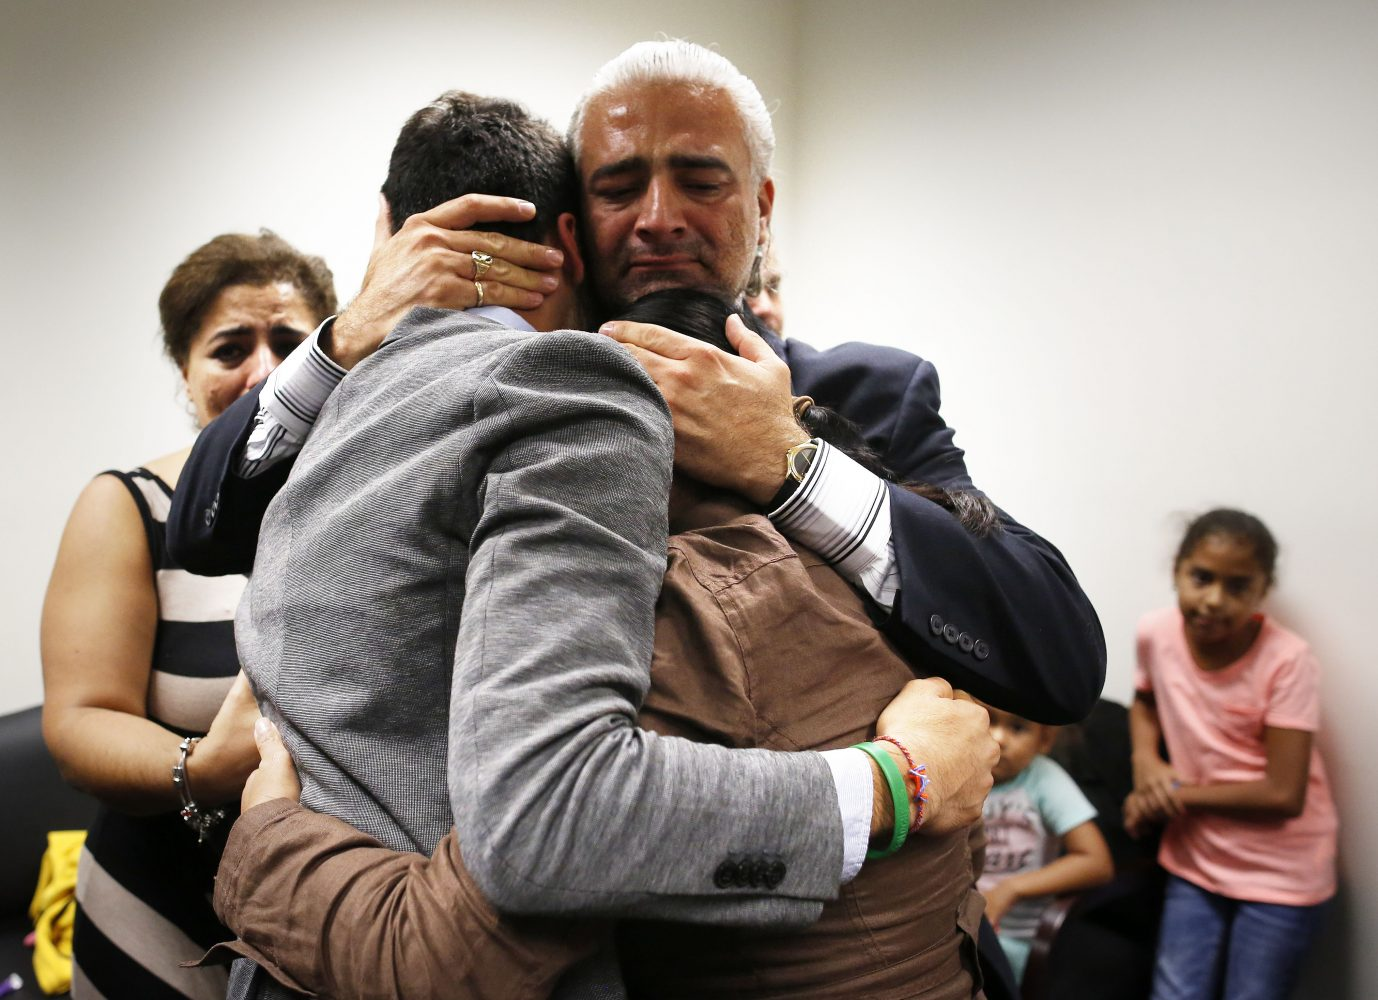 Diego Aguilar, the uncle of slain University of Florida student Christian Aguilar, hugs his nephew Alex, Christian's younger brother and Christian's mother Claudia, in the family's private room at the Alachua County Criminal Justice Center following the guilty verdict of Pedro Bravo Friday, August 15, 2014.  Bravo was found guilty of first degree murder. (Doug Finger/The Gainesville Sun/Pool)